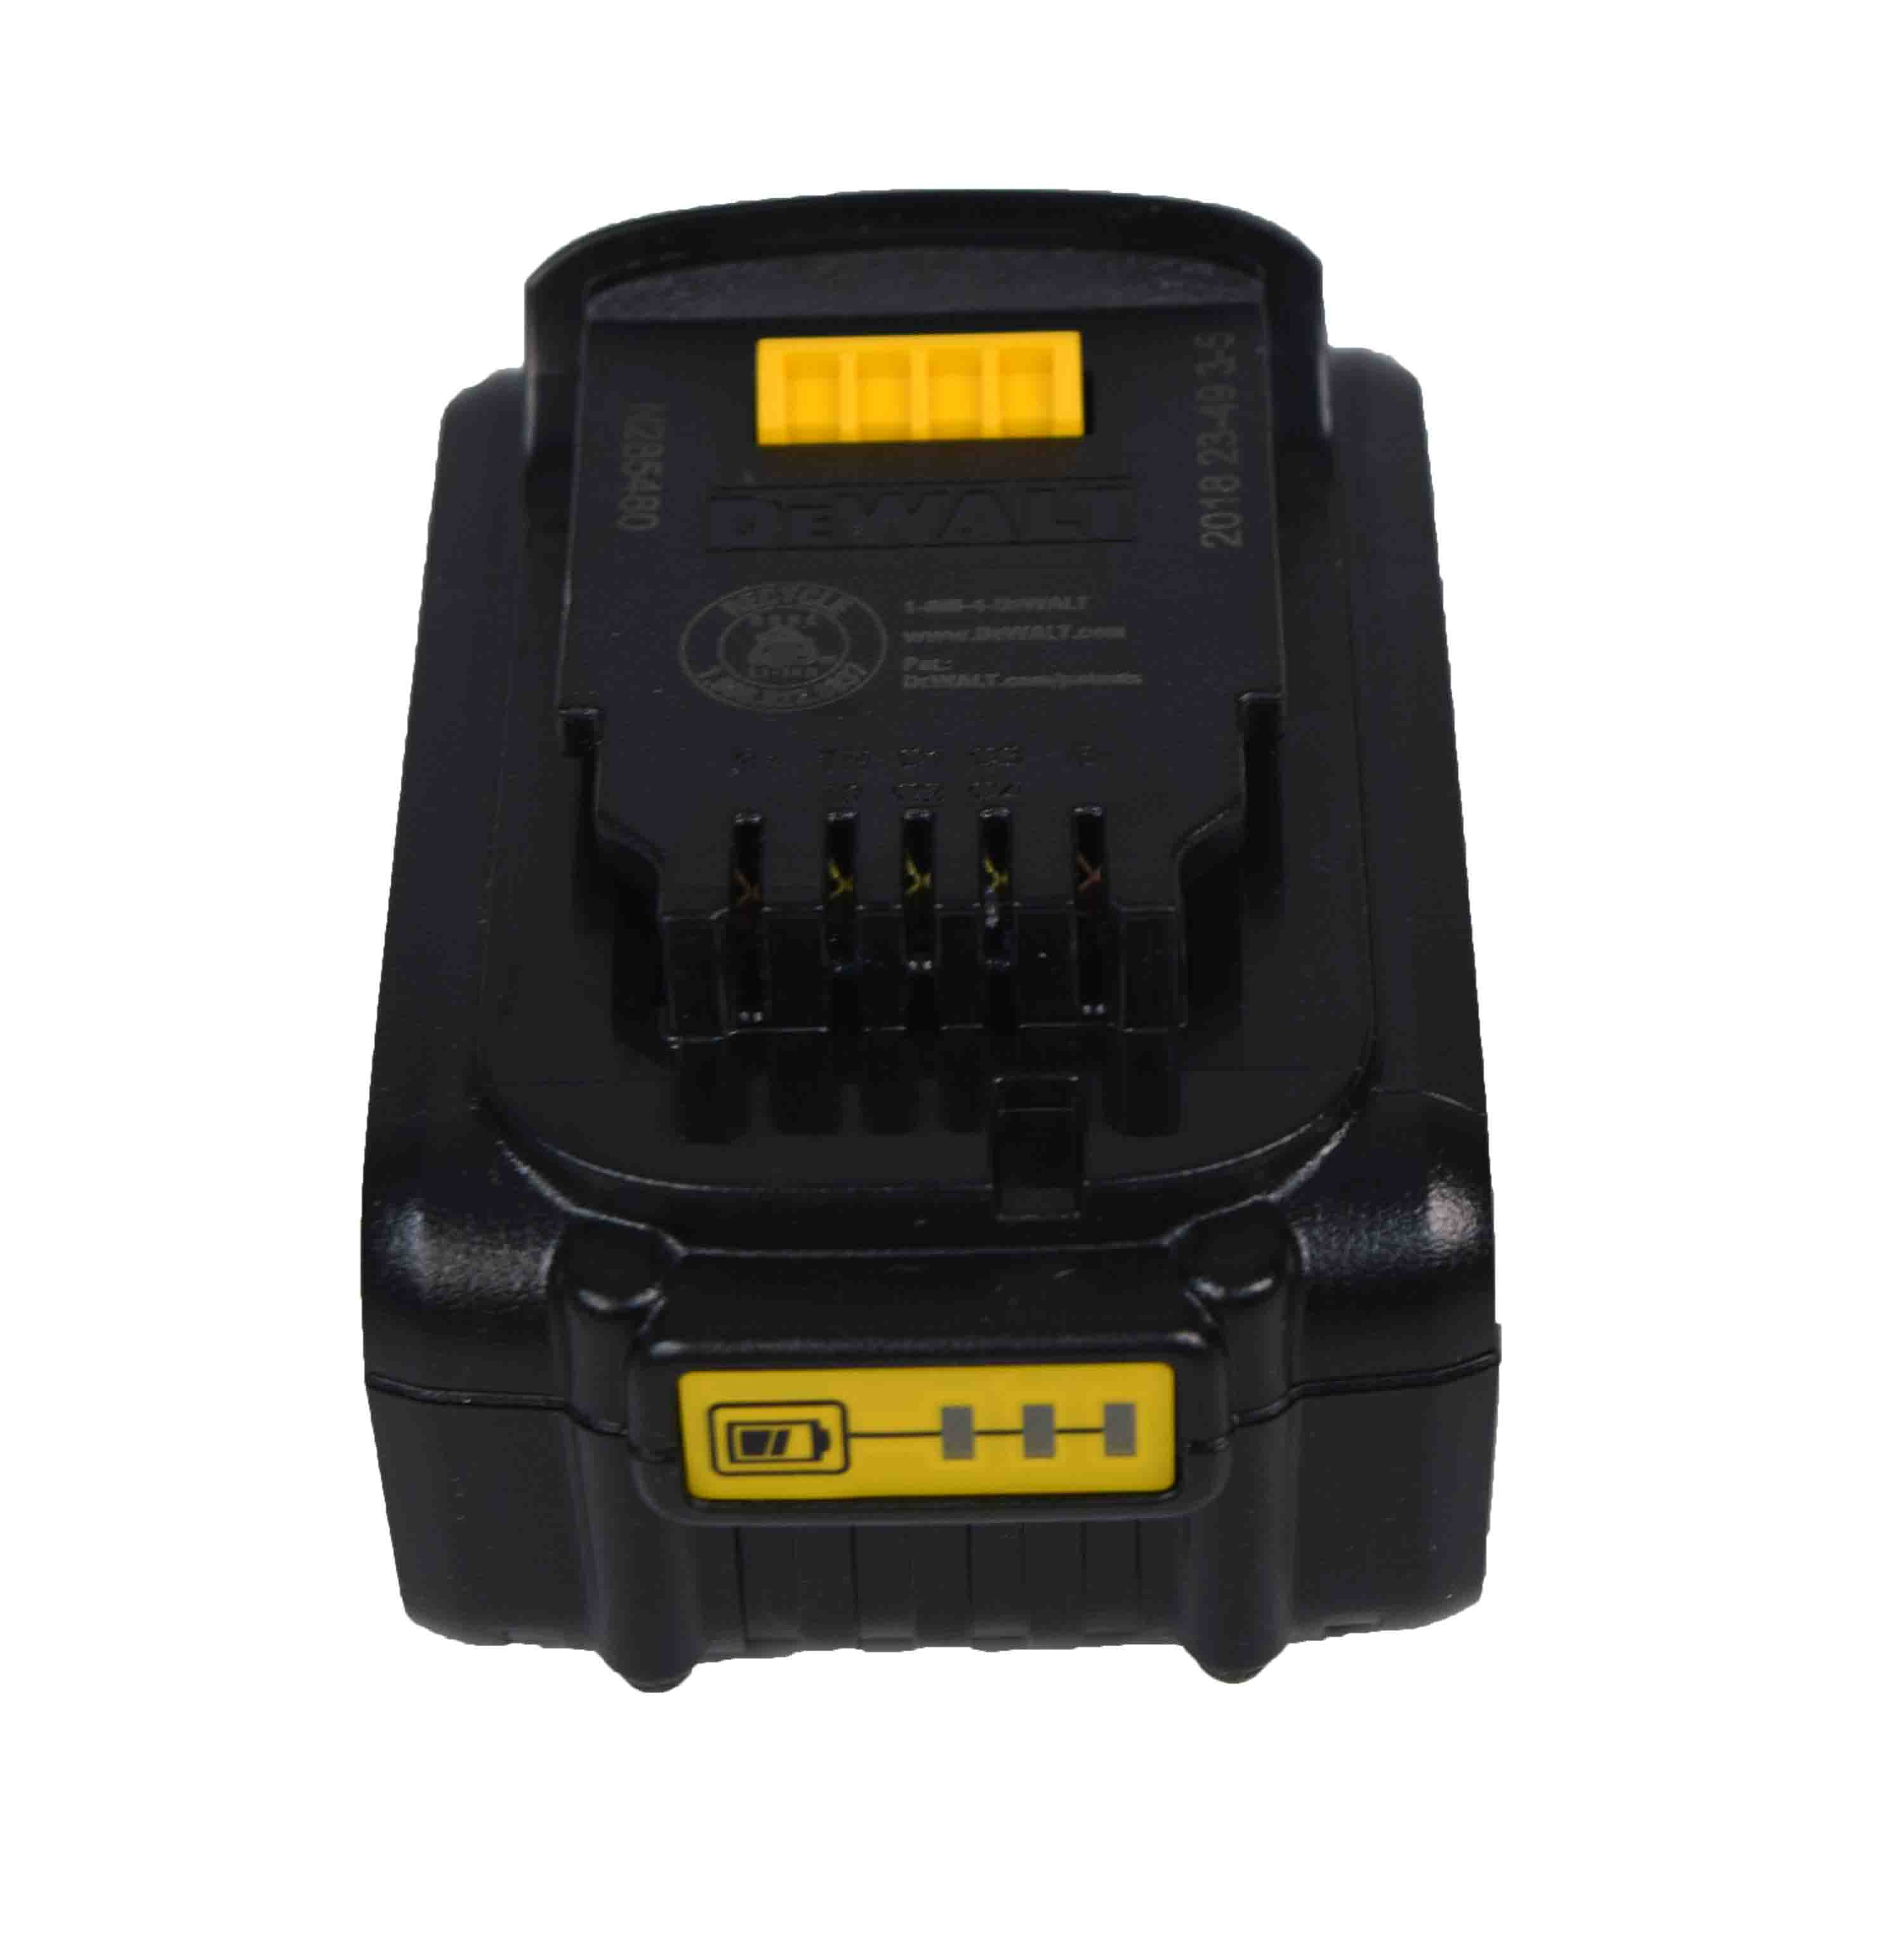 Dewalt-Dcb200-20-Volt-3-Ah-Lithium-Ion-Battery-Single-Pack-image-7